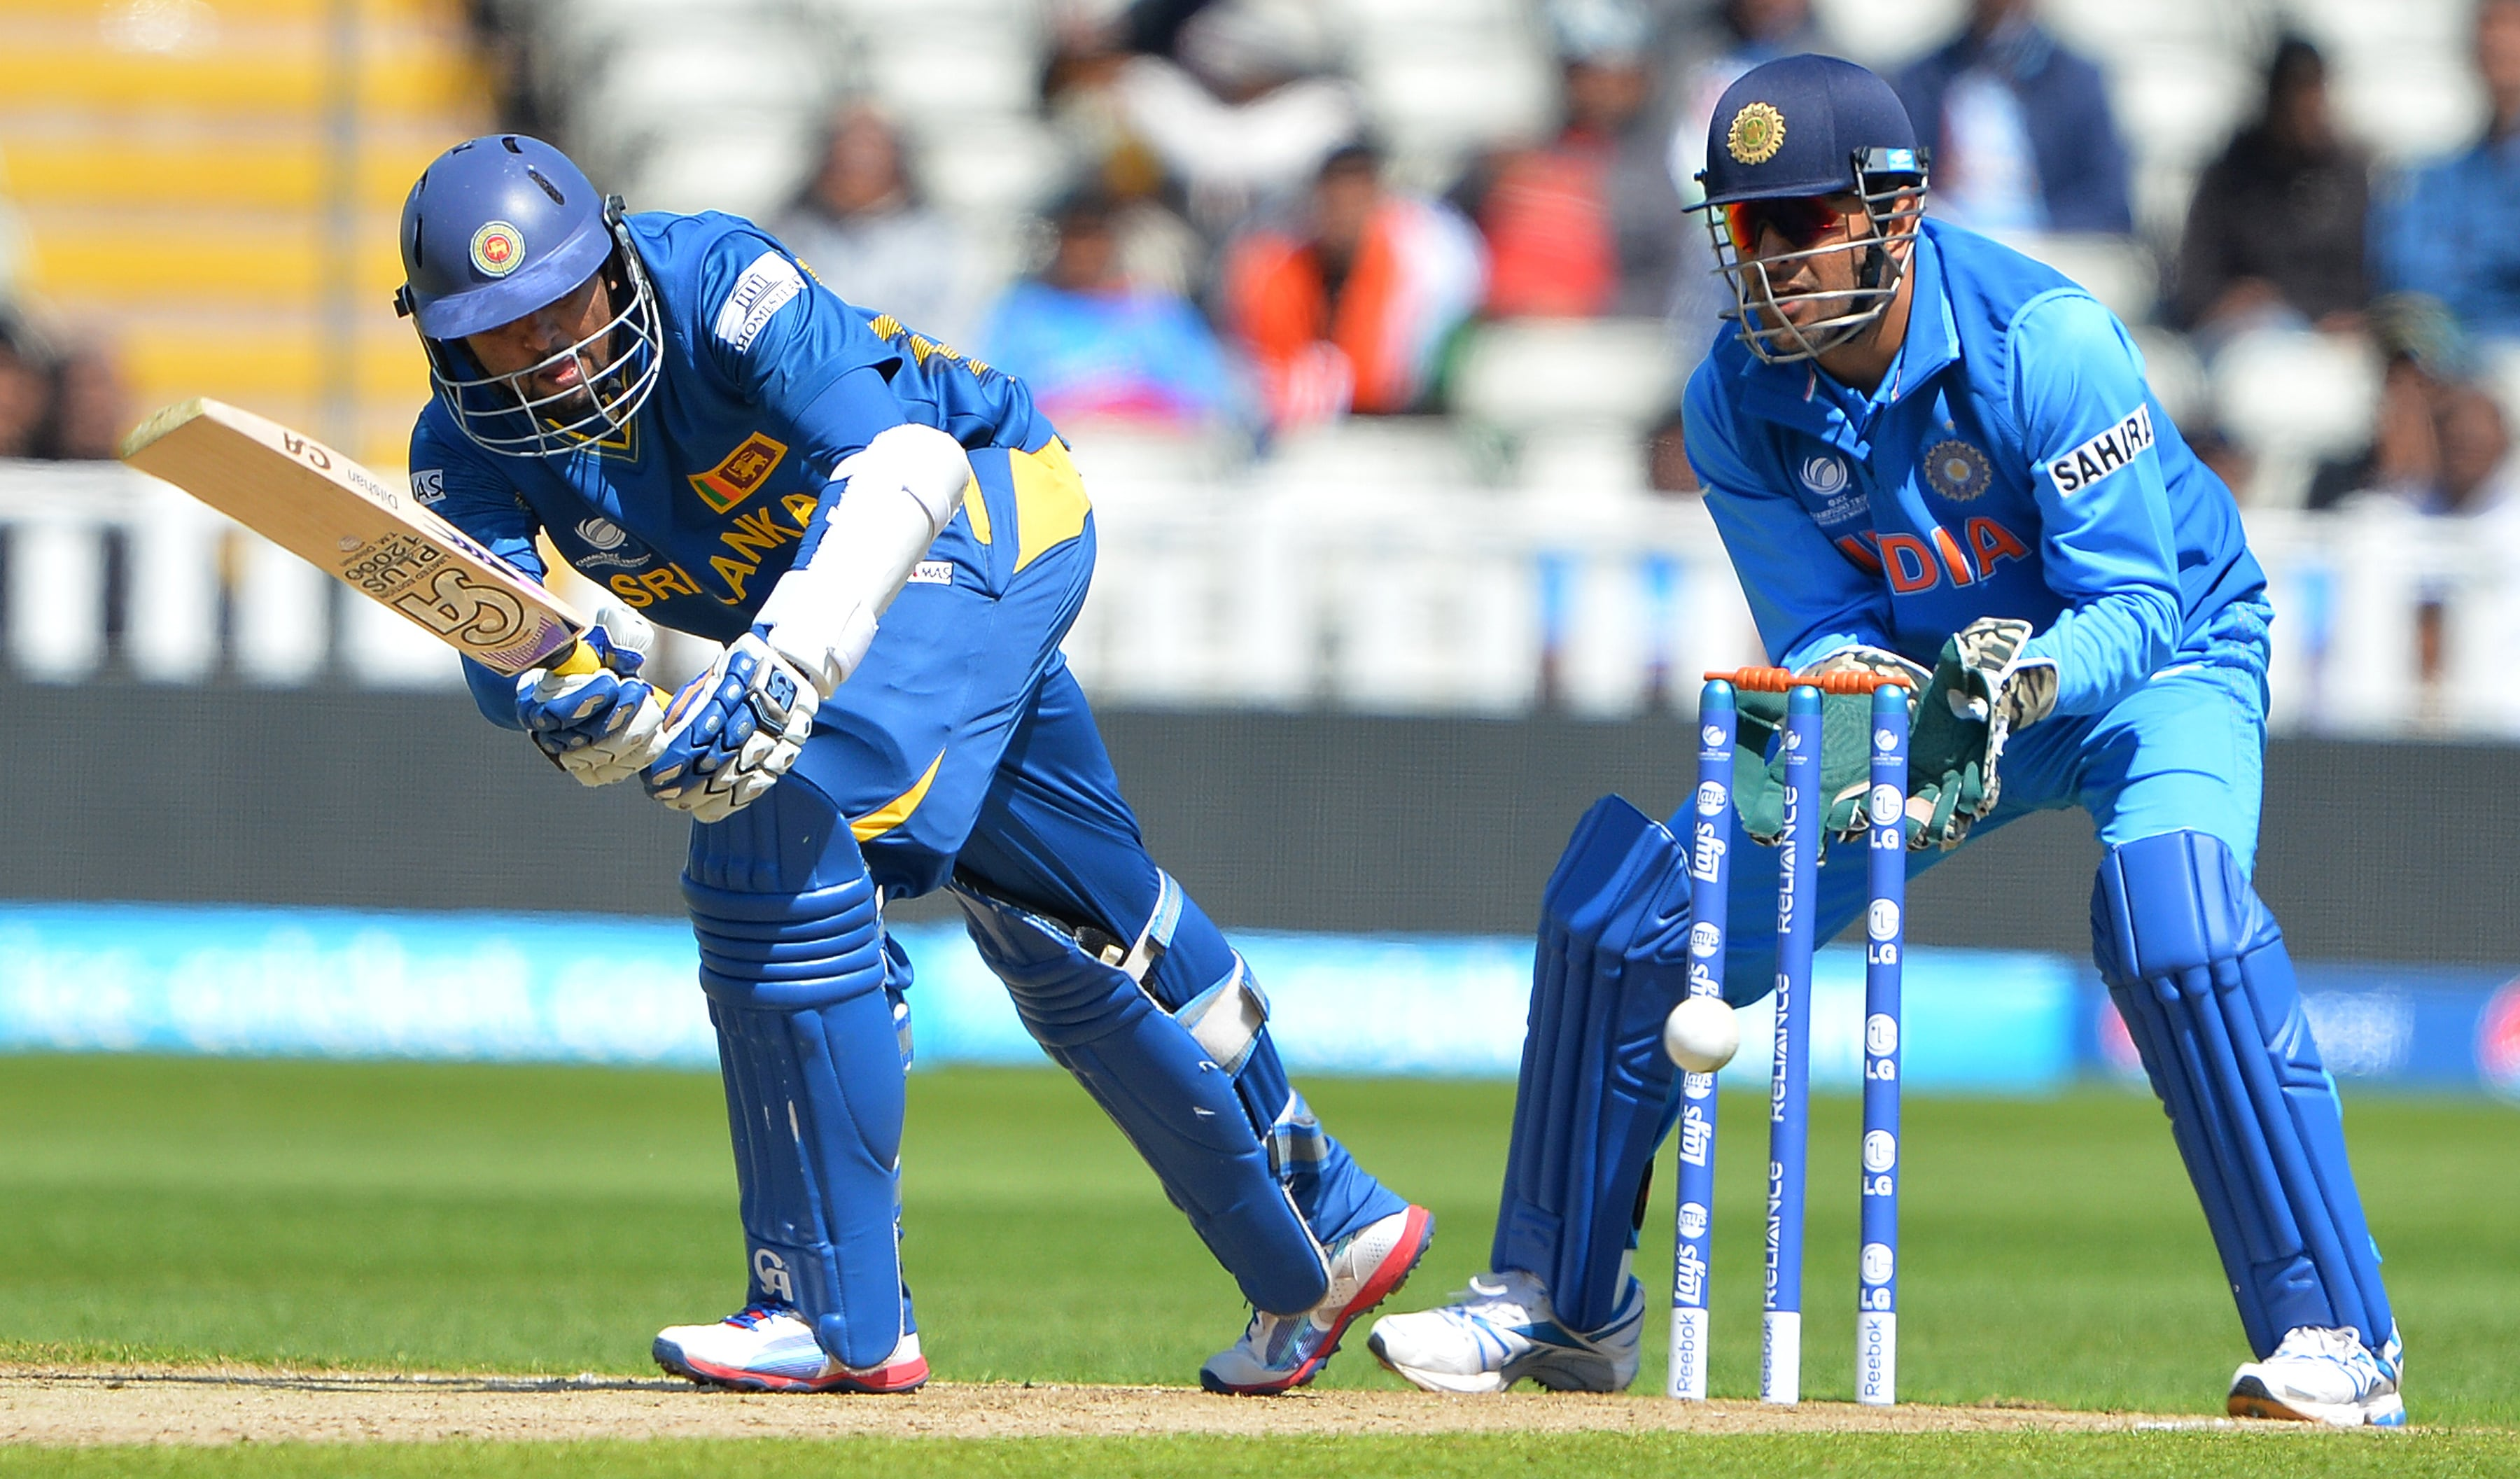 ICC Champions Trophy: India beat Sri Lanka by 5 wickets in 1st warm-up